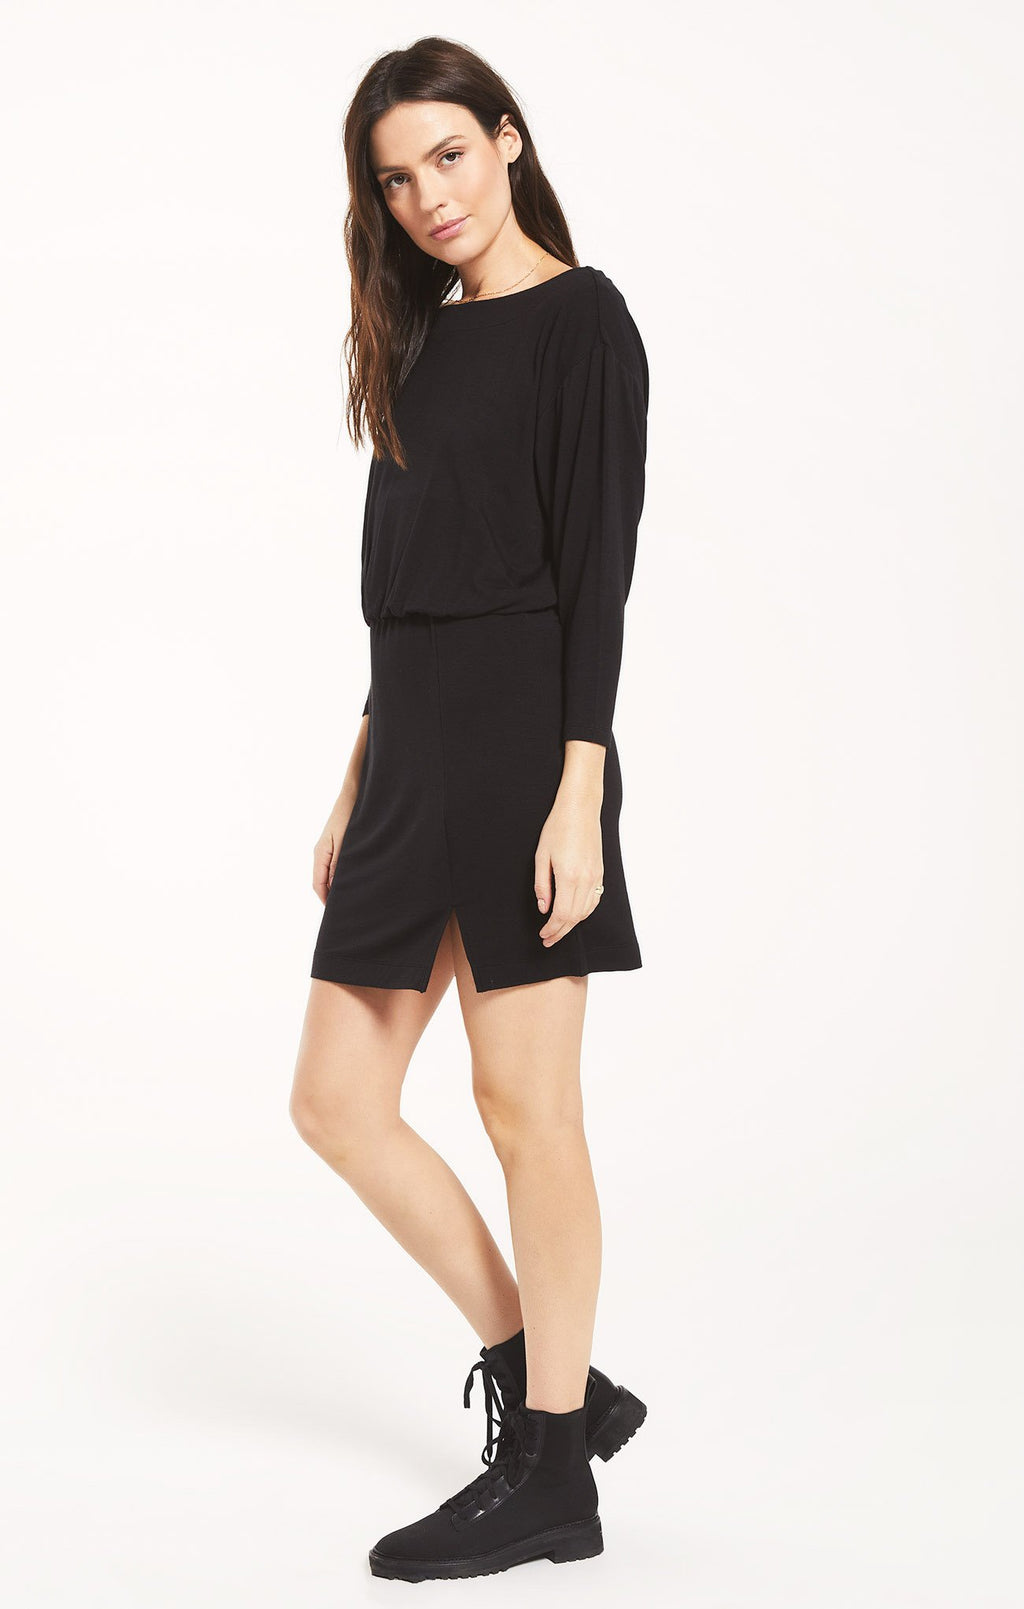 Z Supply Stacia Premium Dress